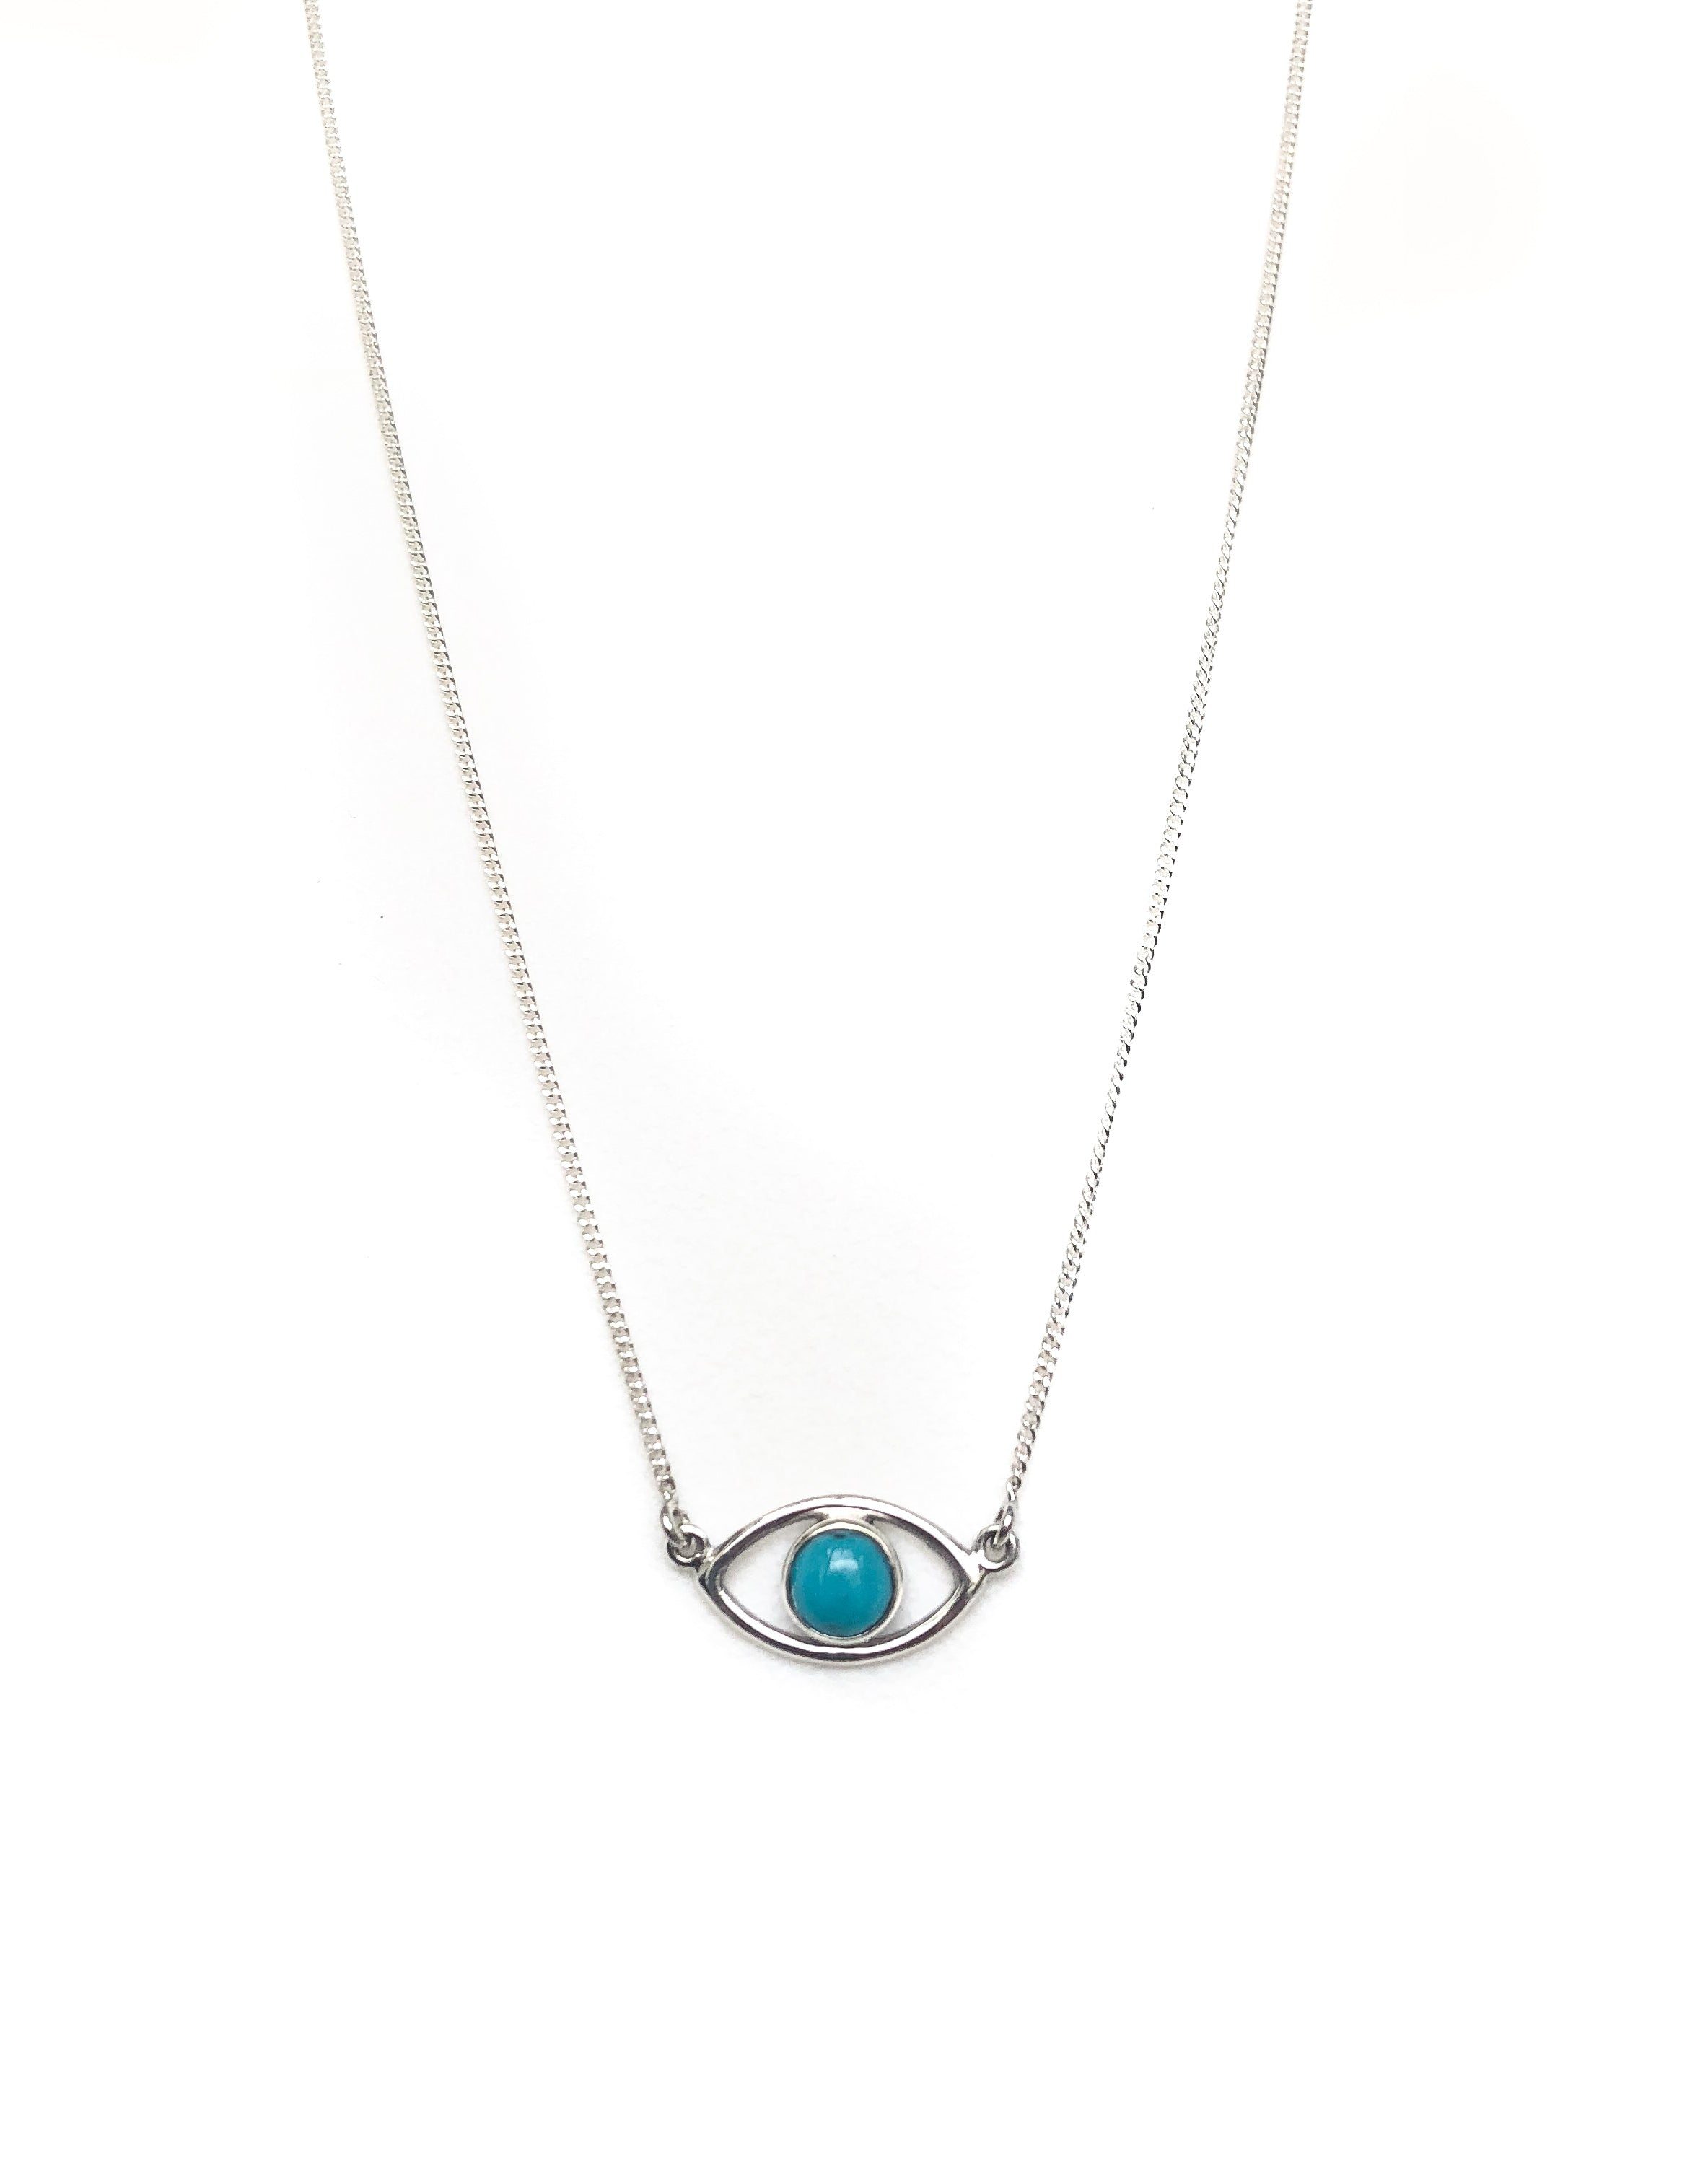 Turquoise Evil Eye Sterling Silver necklace